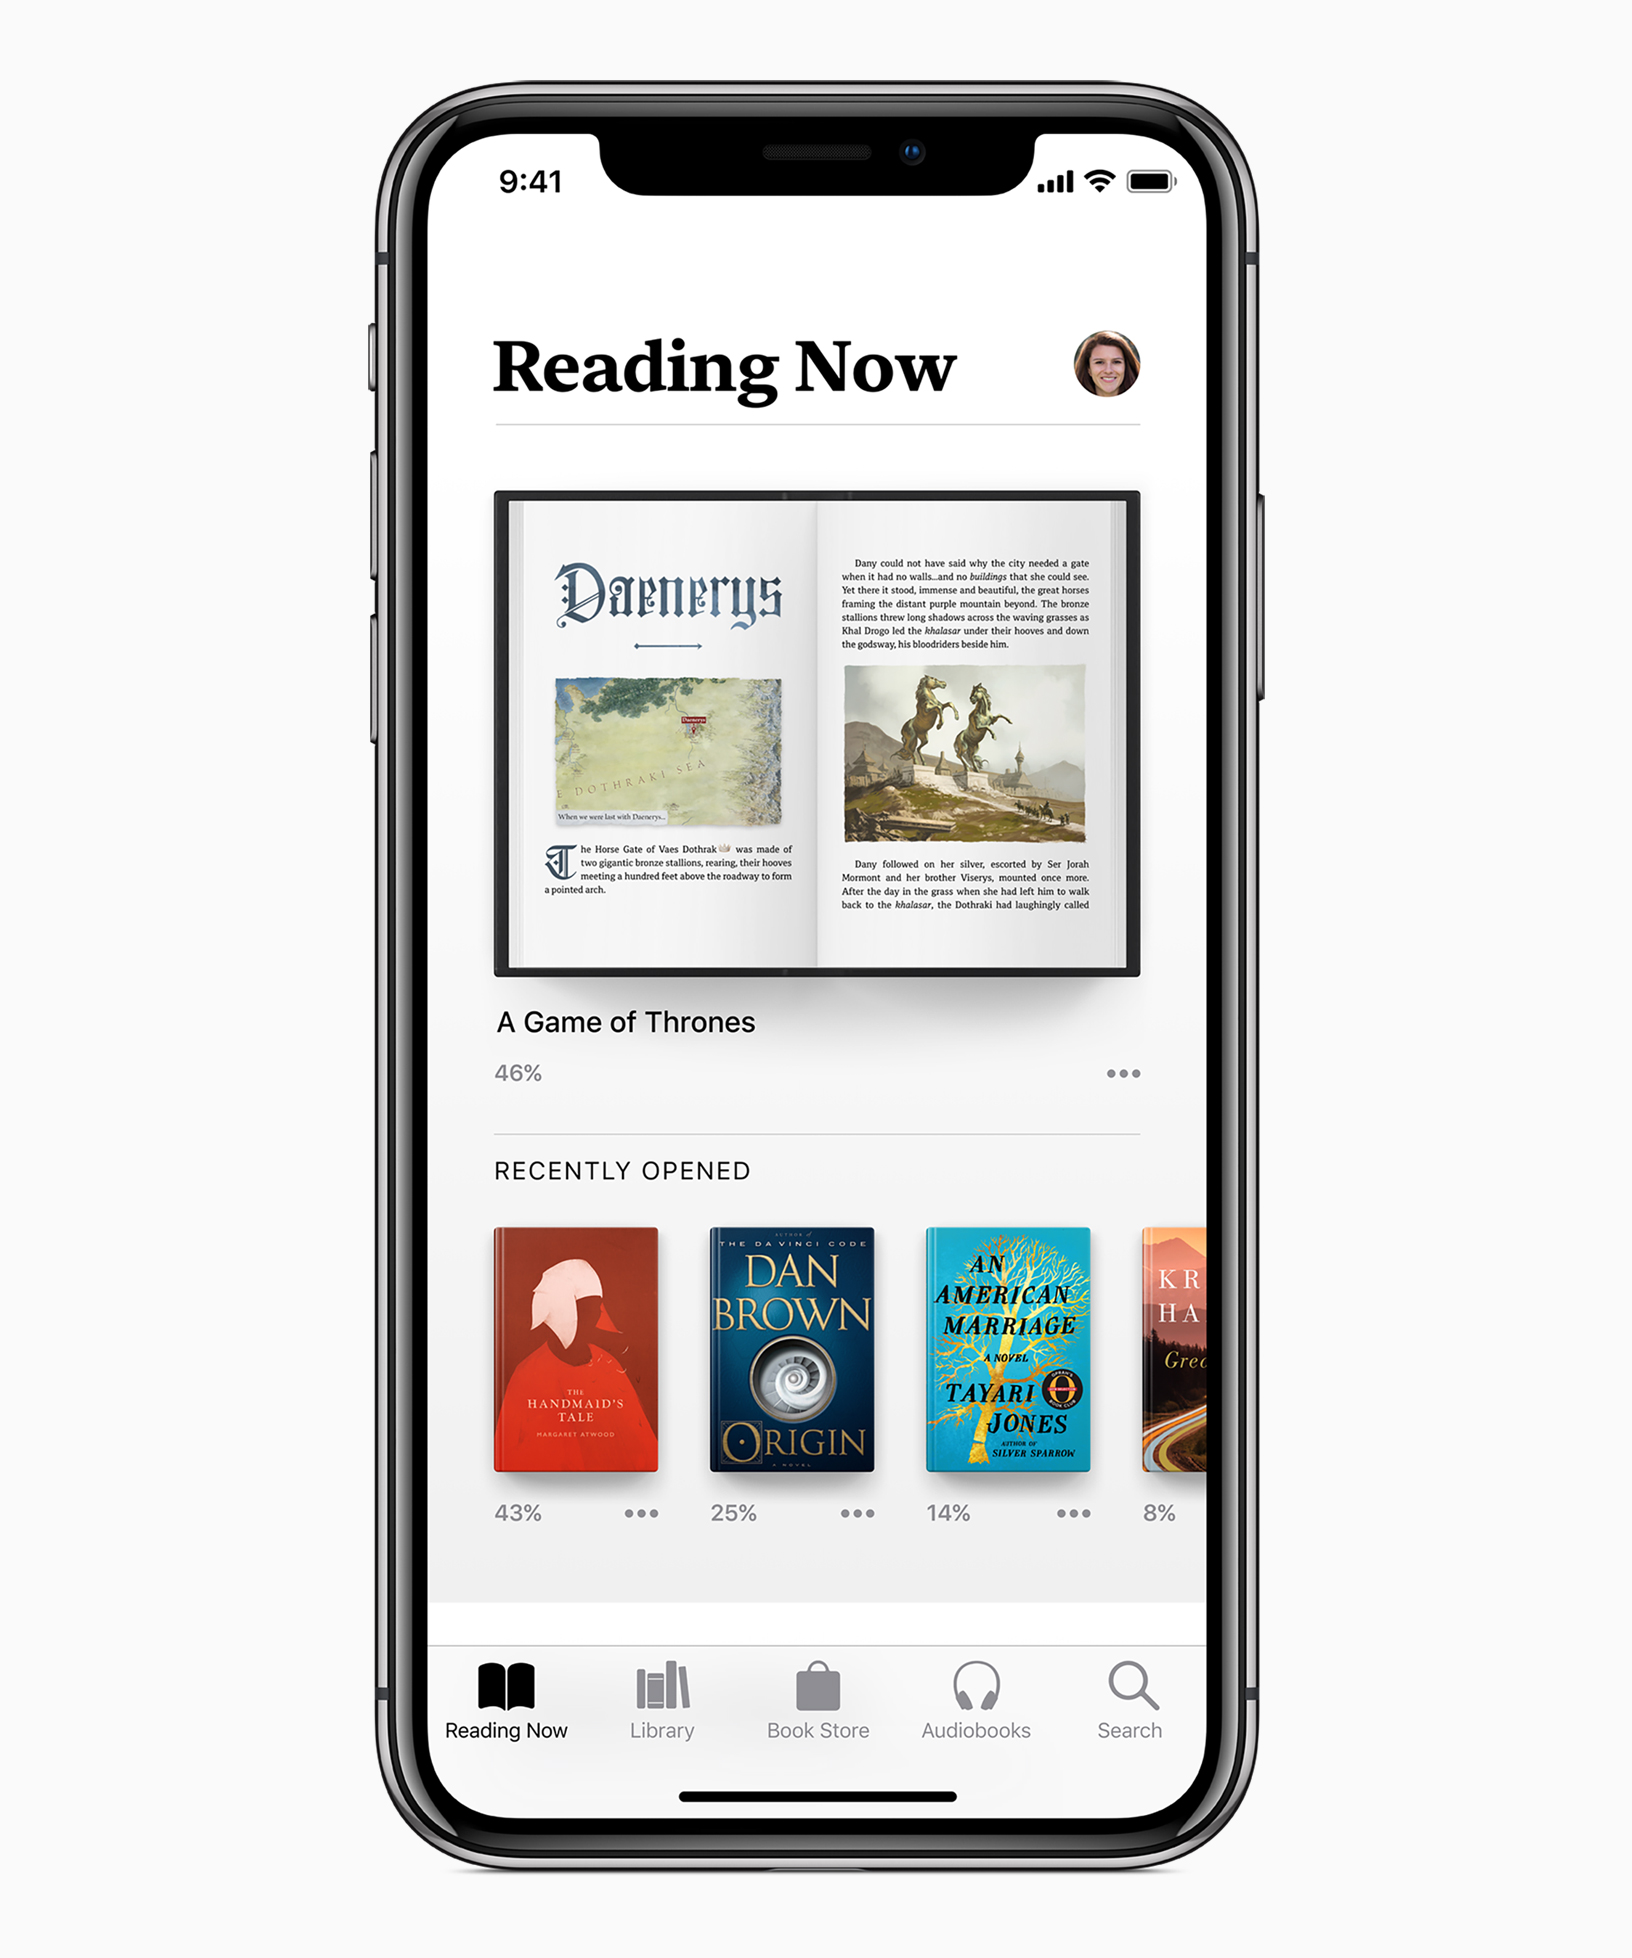 App replaces iBooks for iPad and iPhone